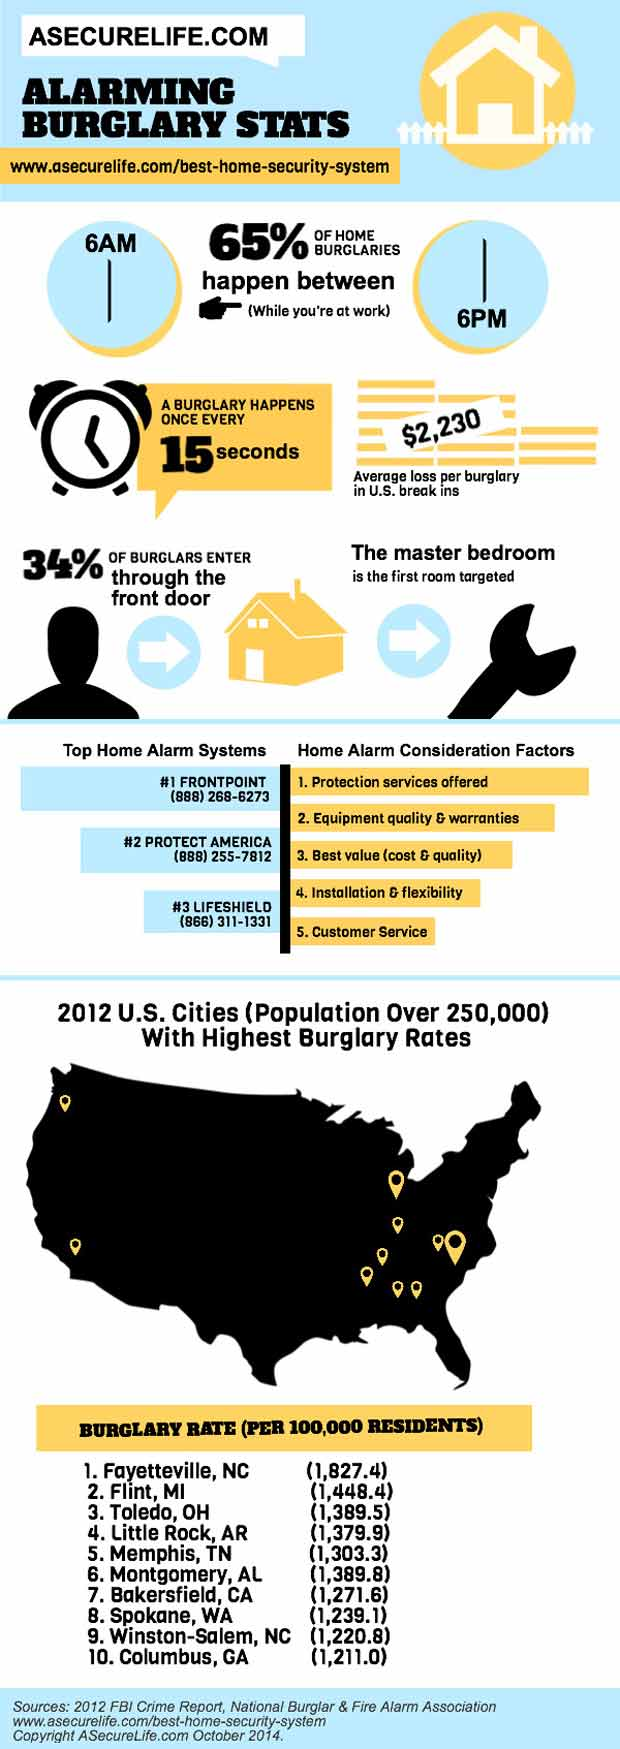 Home Burglary Statistics: Will Your Home be Broken Into?